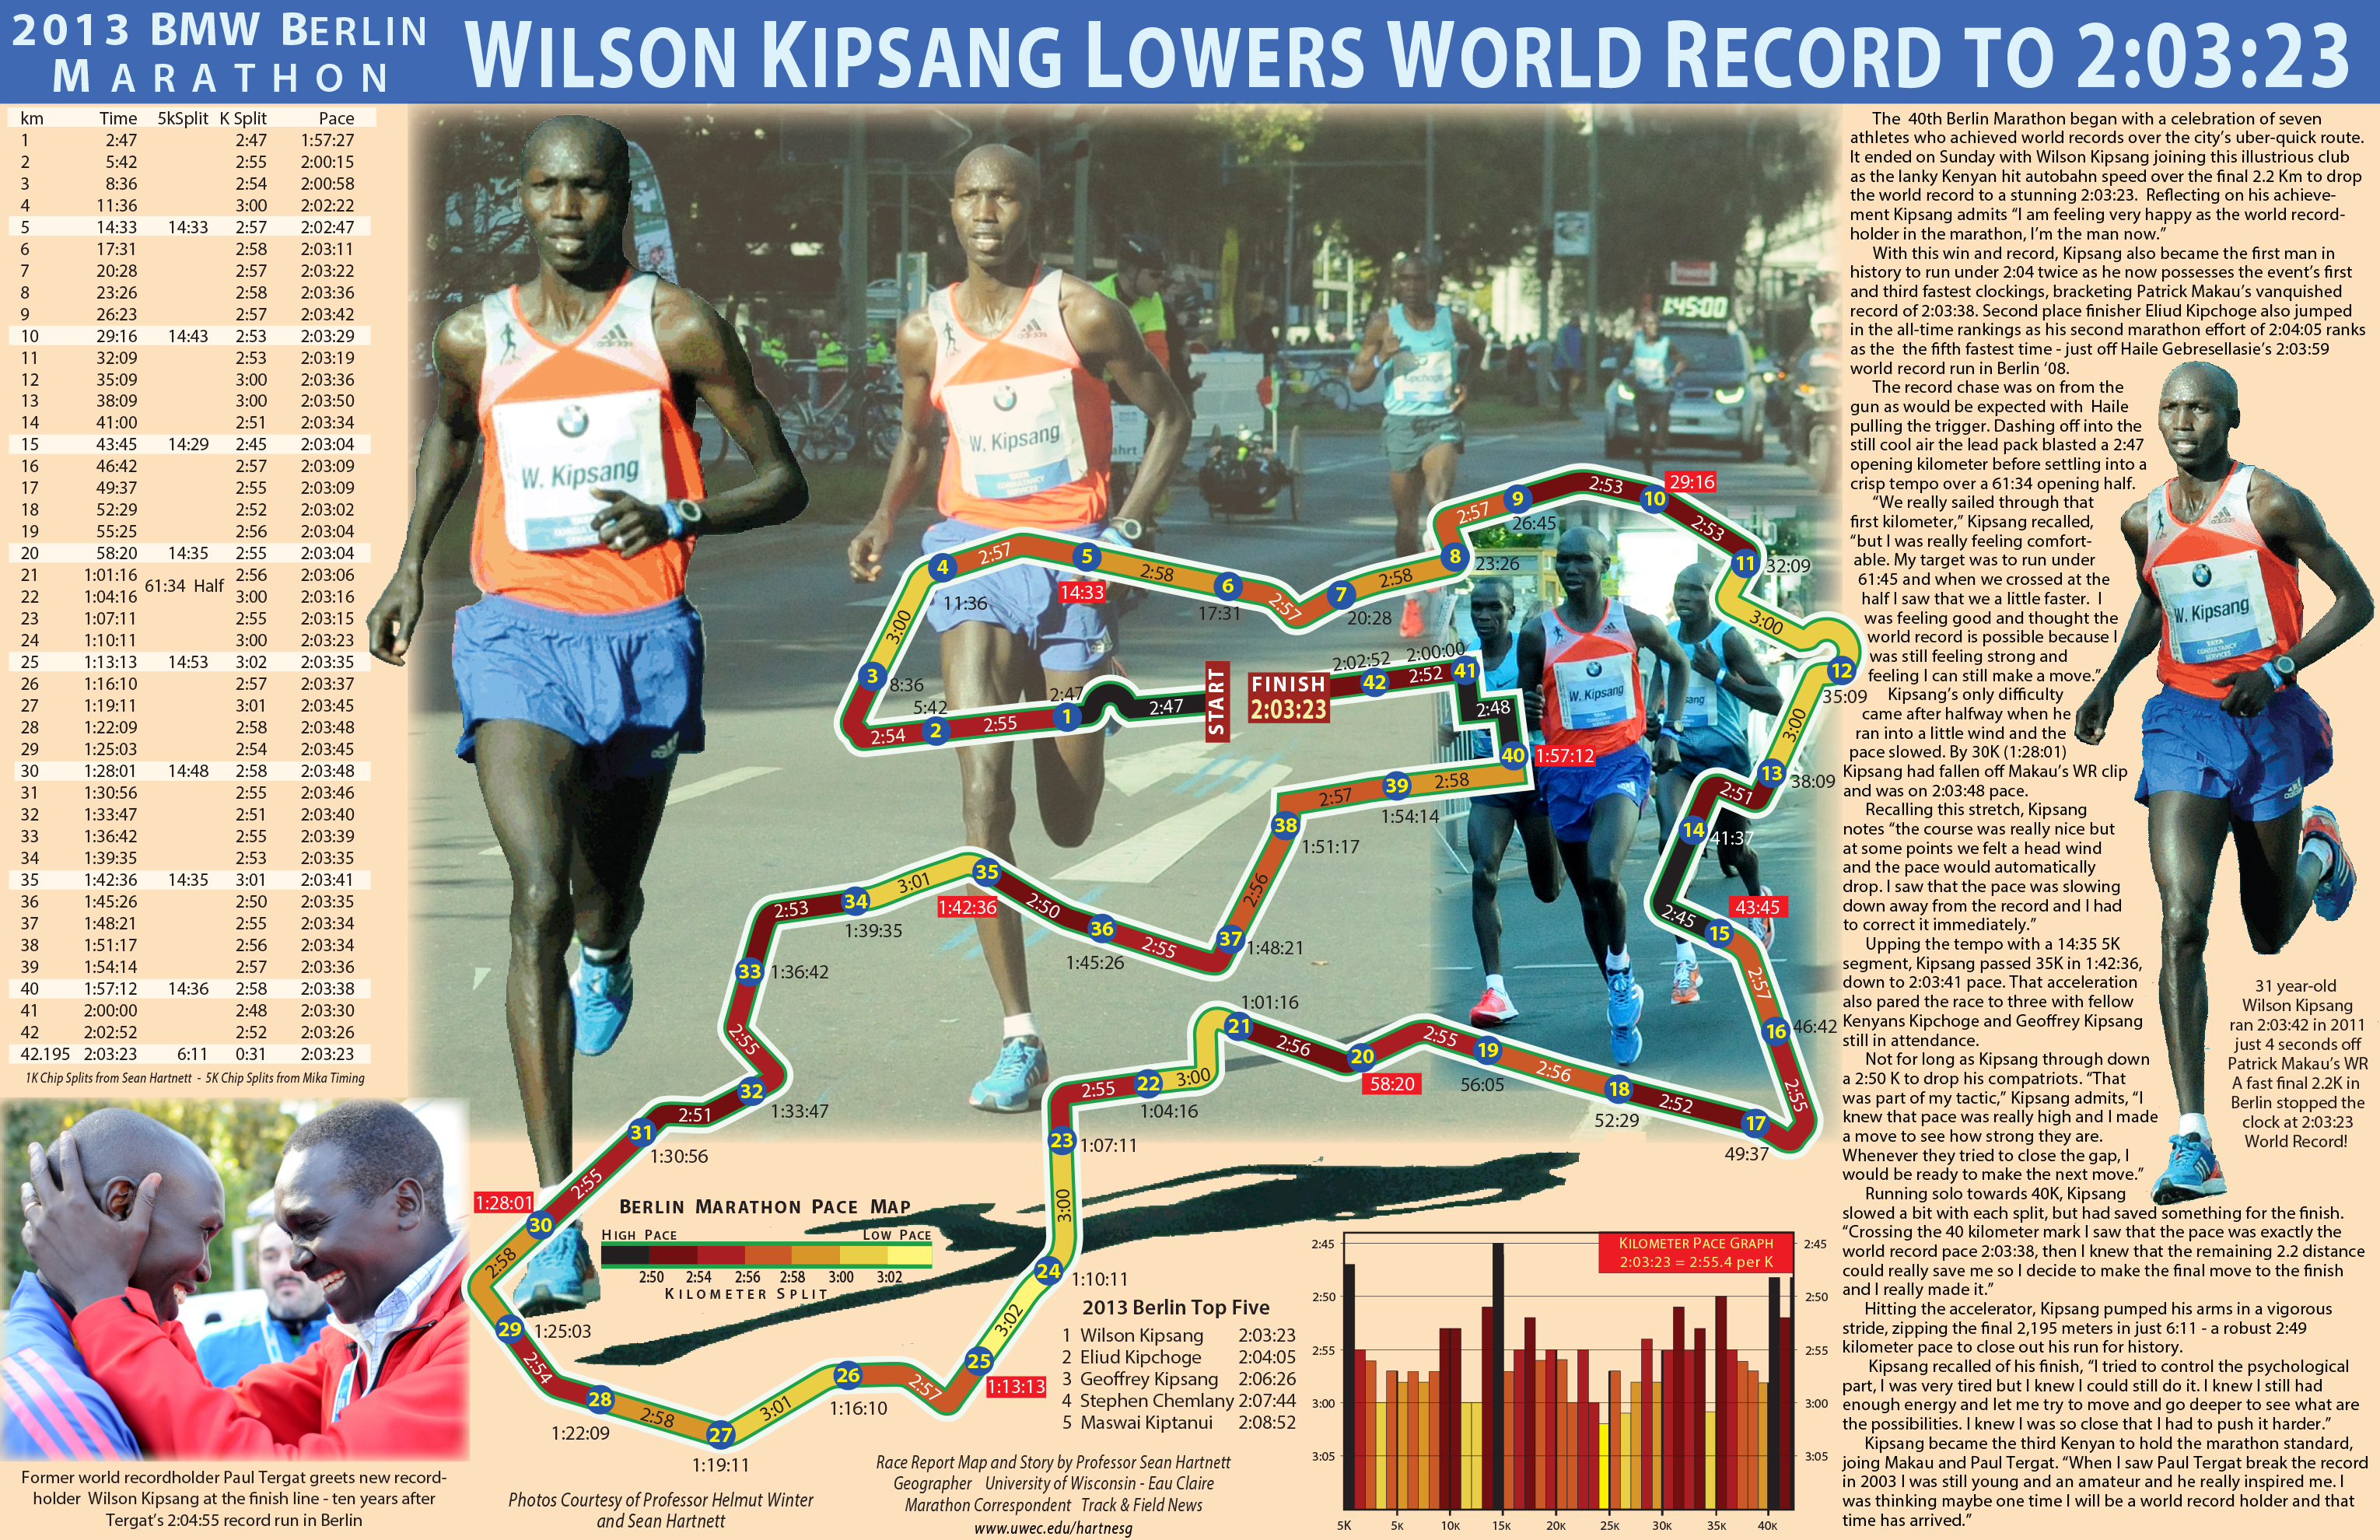 2013 Berlin Marathon: Wilson Kipsangu0027s World Record Pace Chart, Course Map,  ...